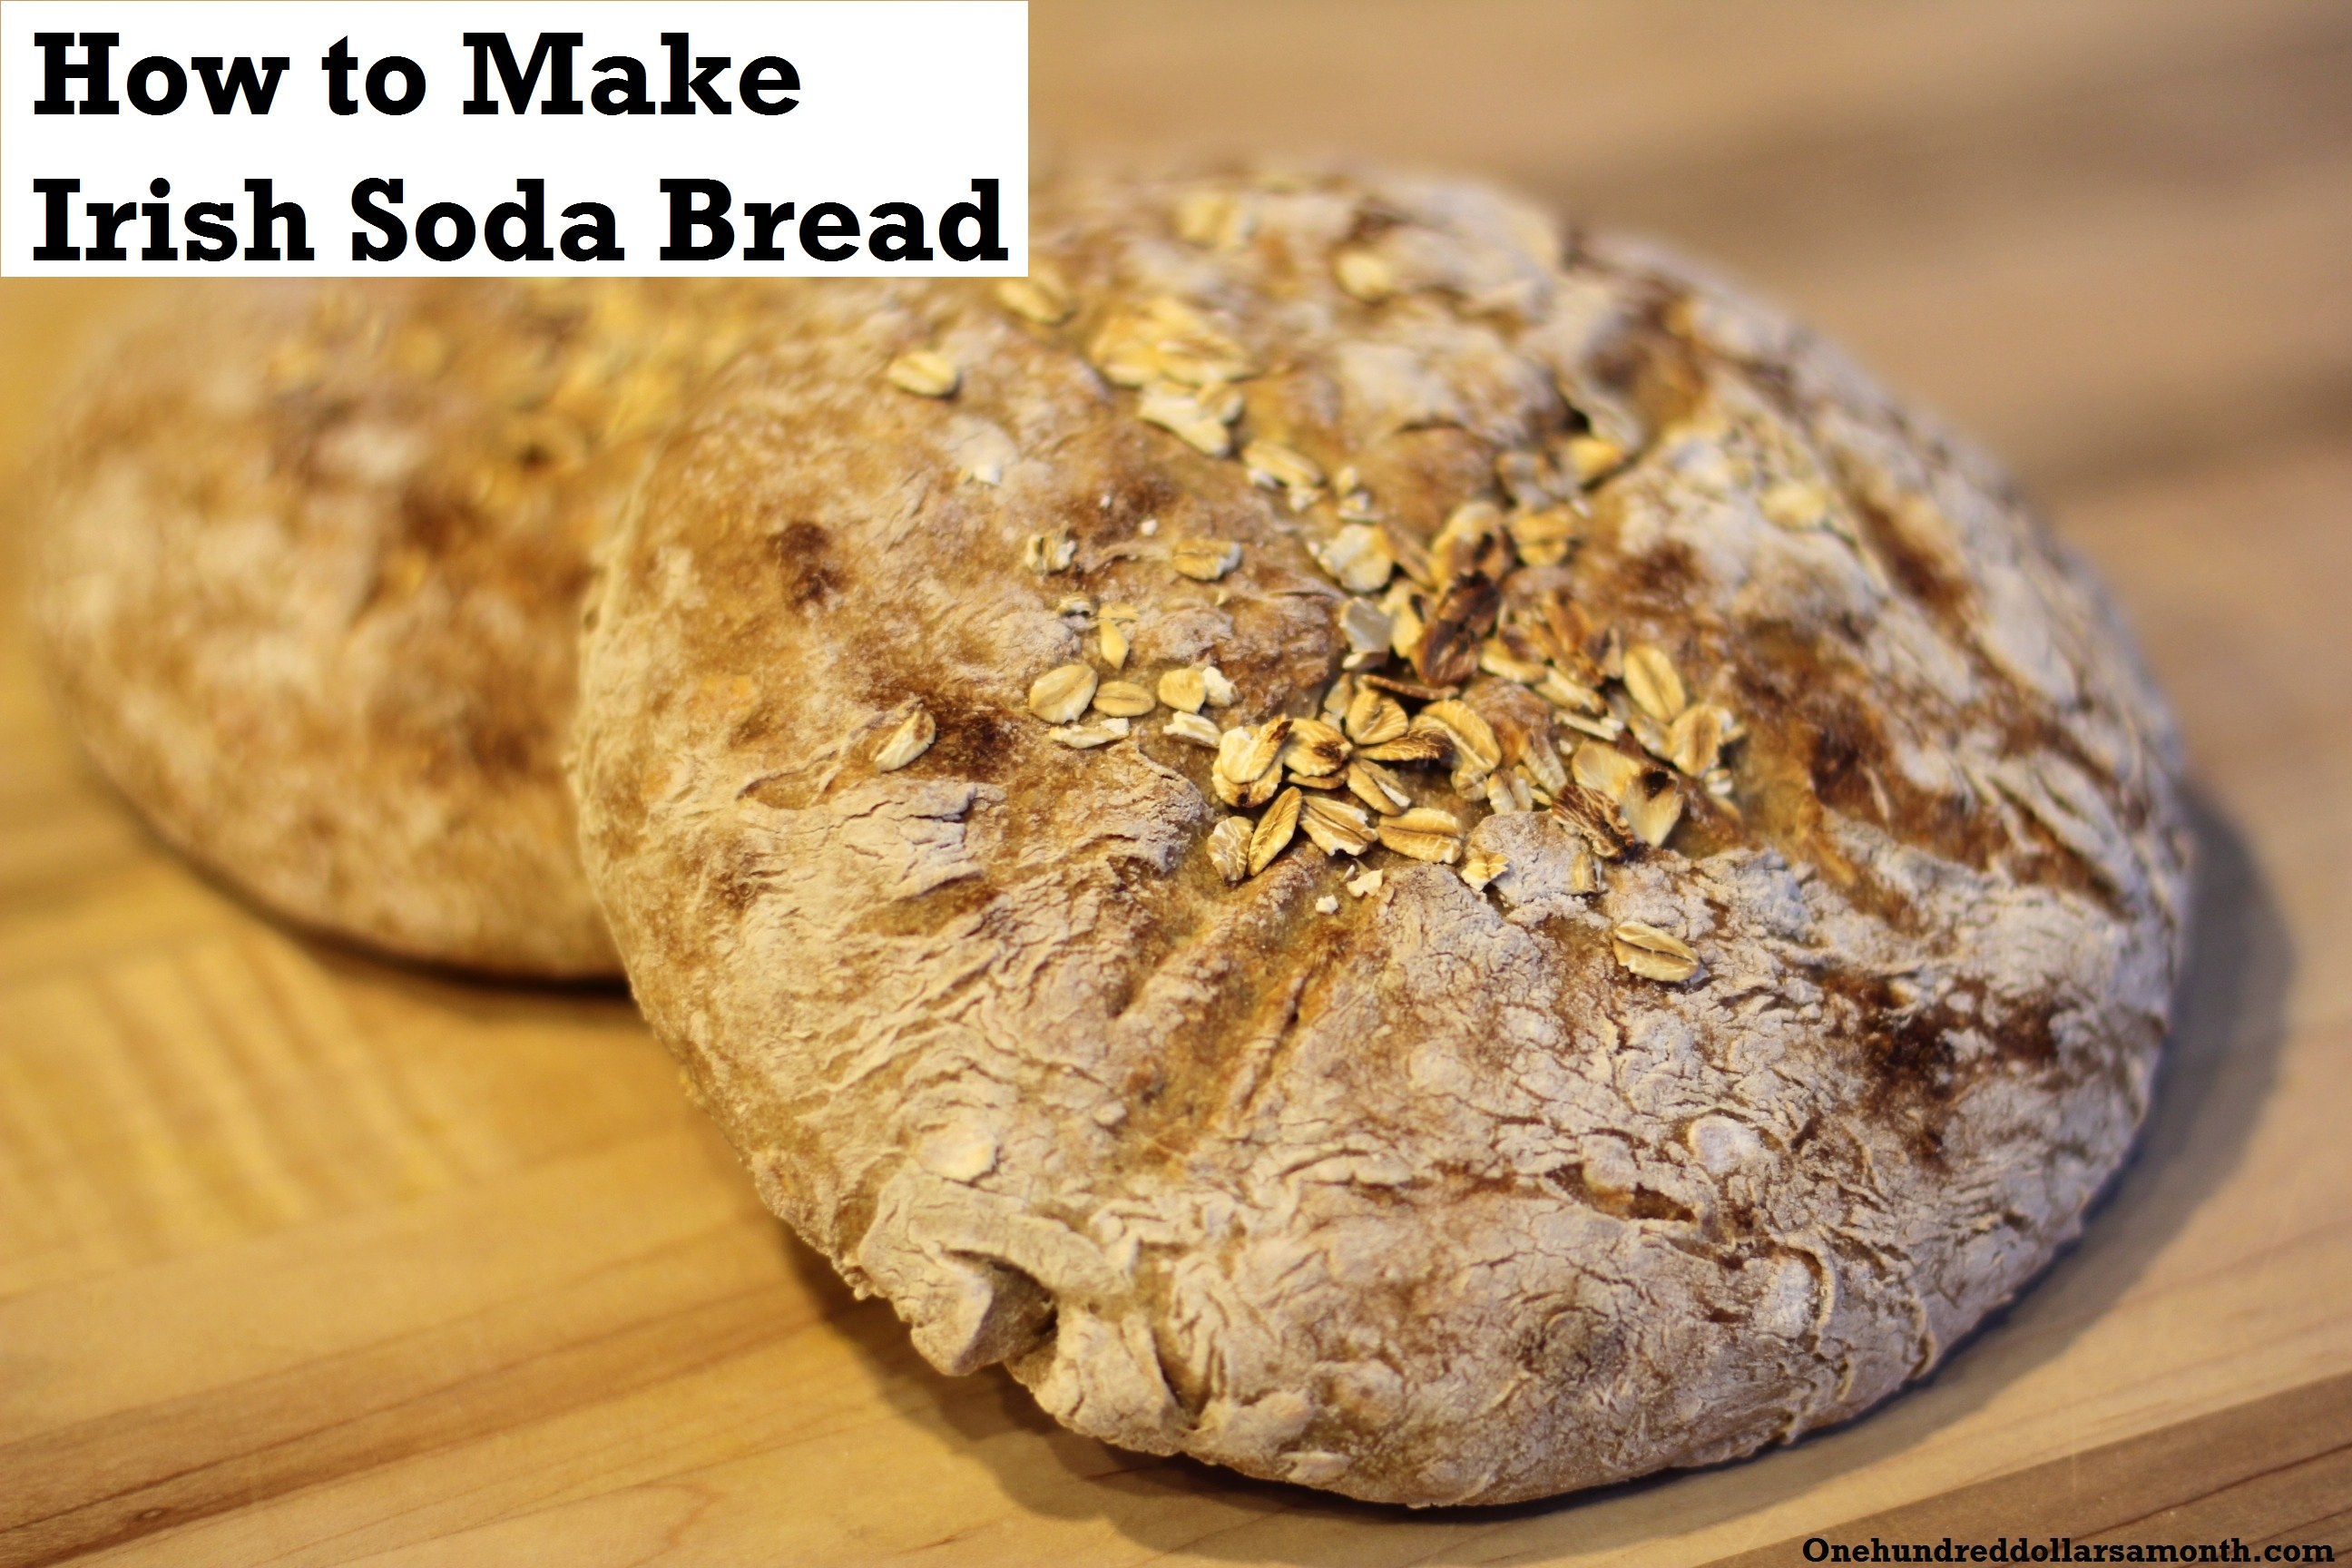 St. Patrick's Day Recipe: How To Make Irish Soda Bread